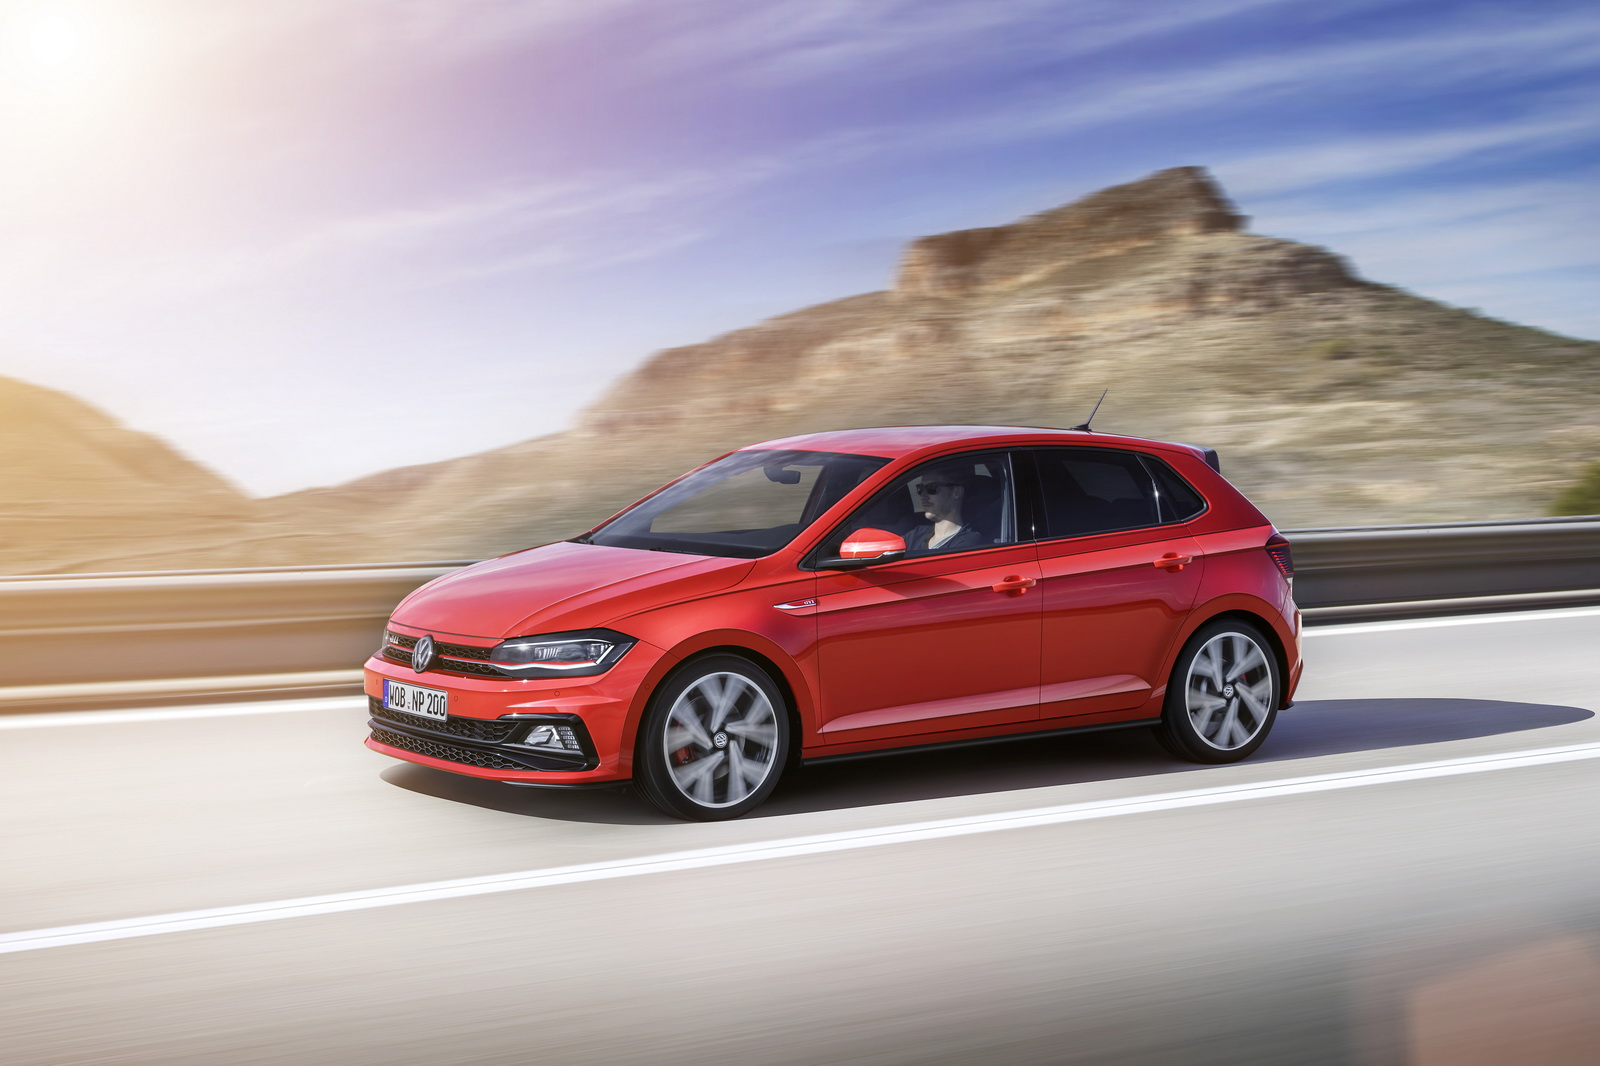 Volkswagen Polo and Polo GTI 2018 (48)